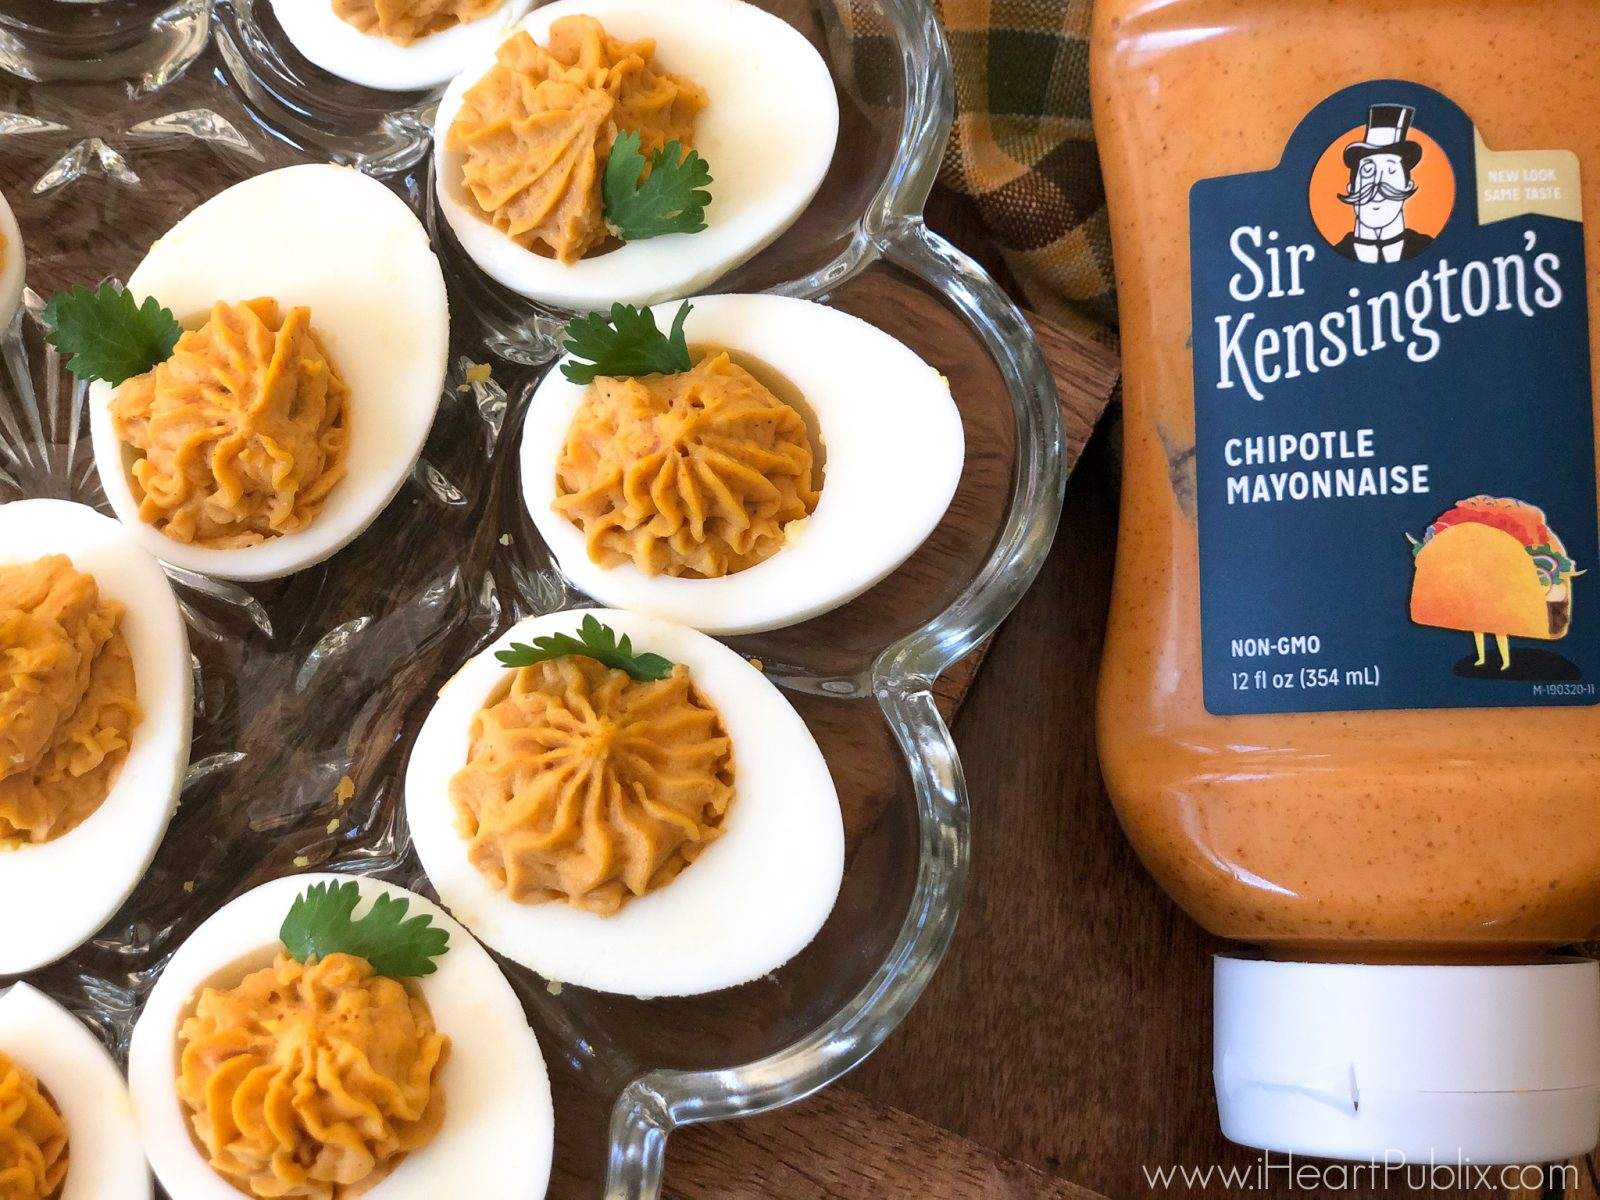 Add These Chipotle Deviled Eggs With Bacon To Your Holiday Menu - Save On Sir Kensington's At Publix on I Heart Publix 1